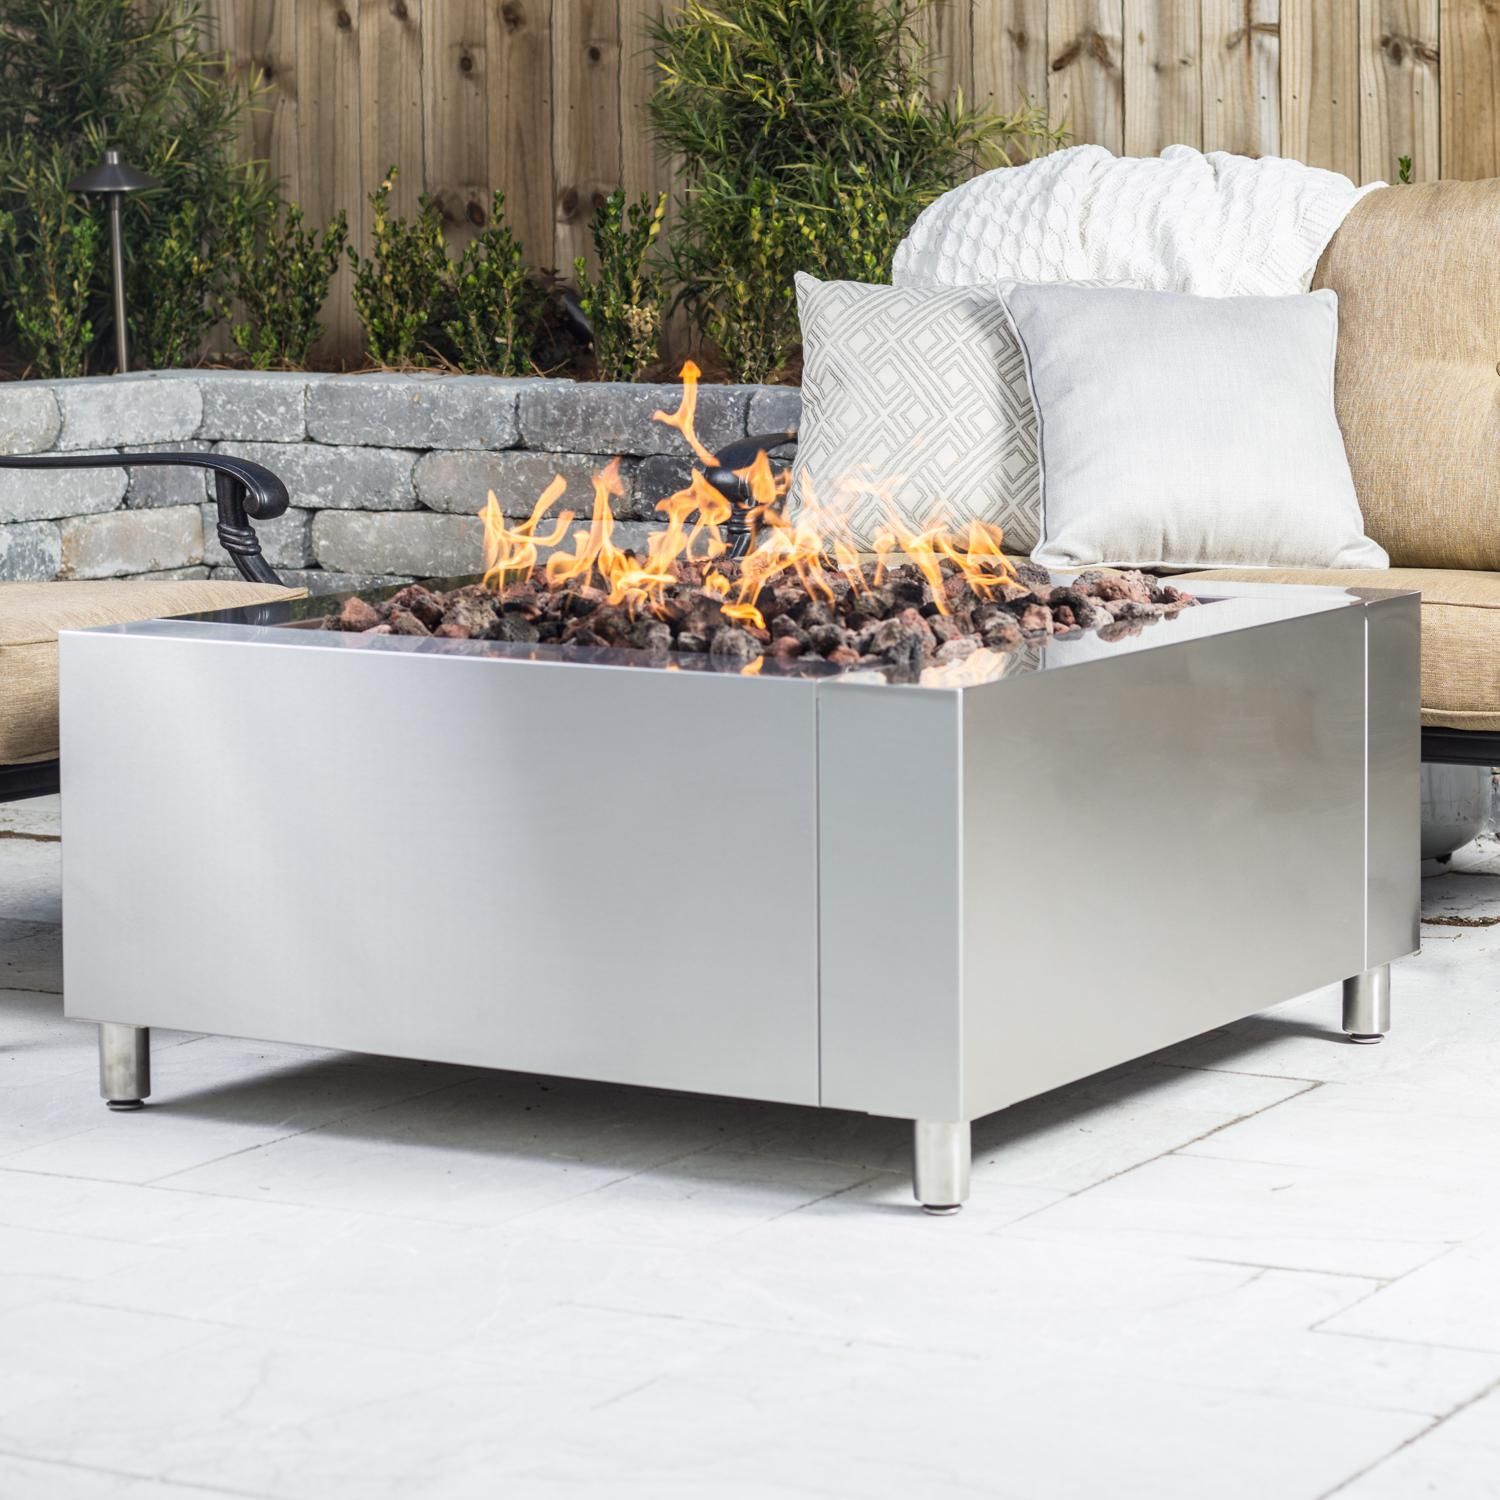 This Alpine Flame 42 Inch Stainless Steel Square Fire Pit Comes Complete With 24